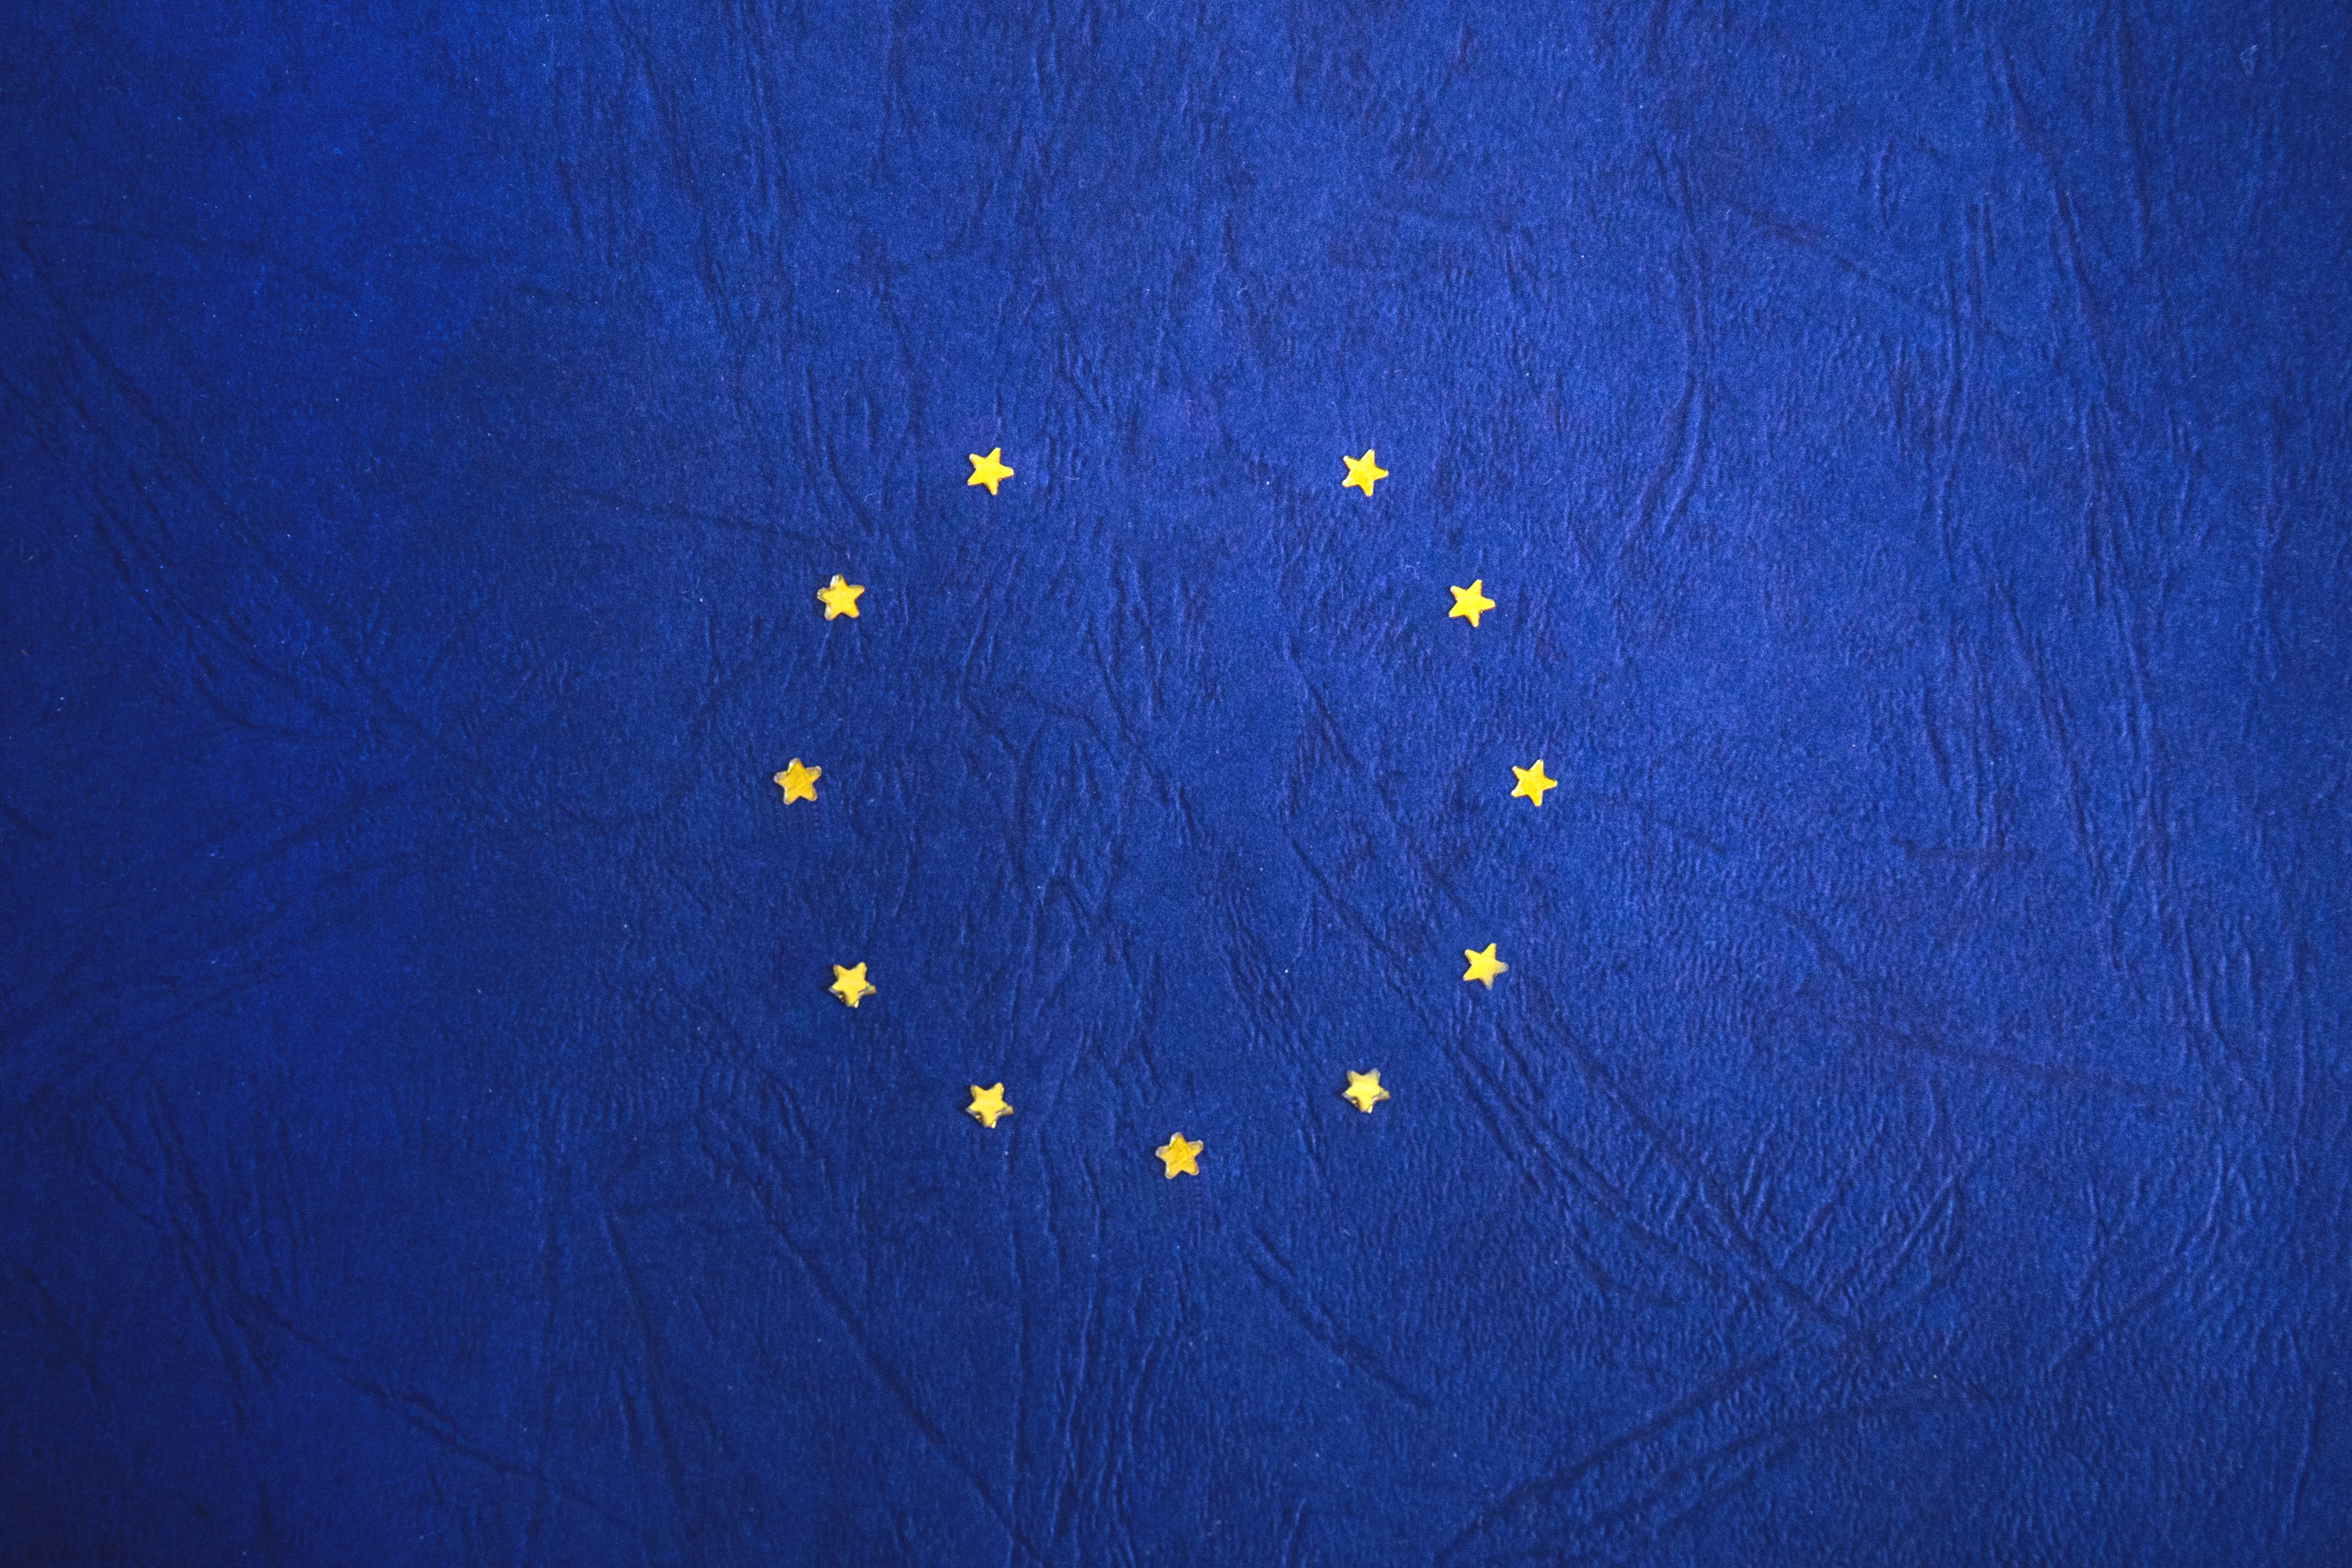 European Union - Brexit